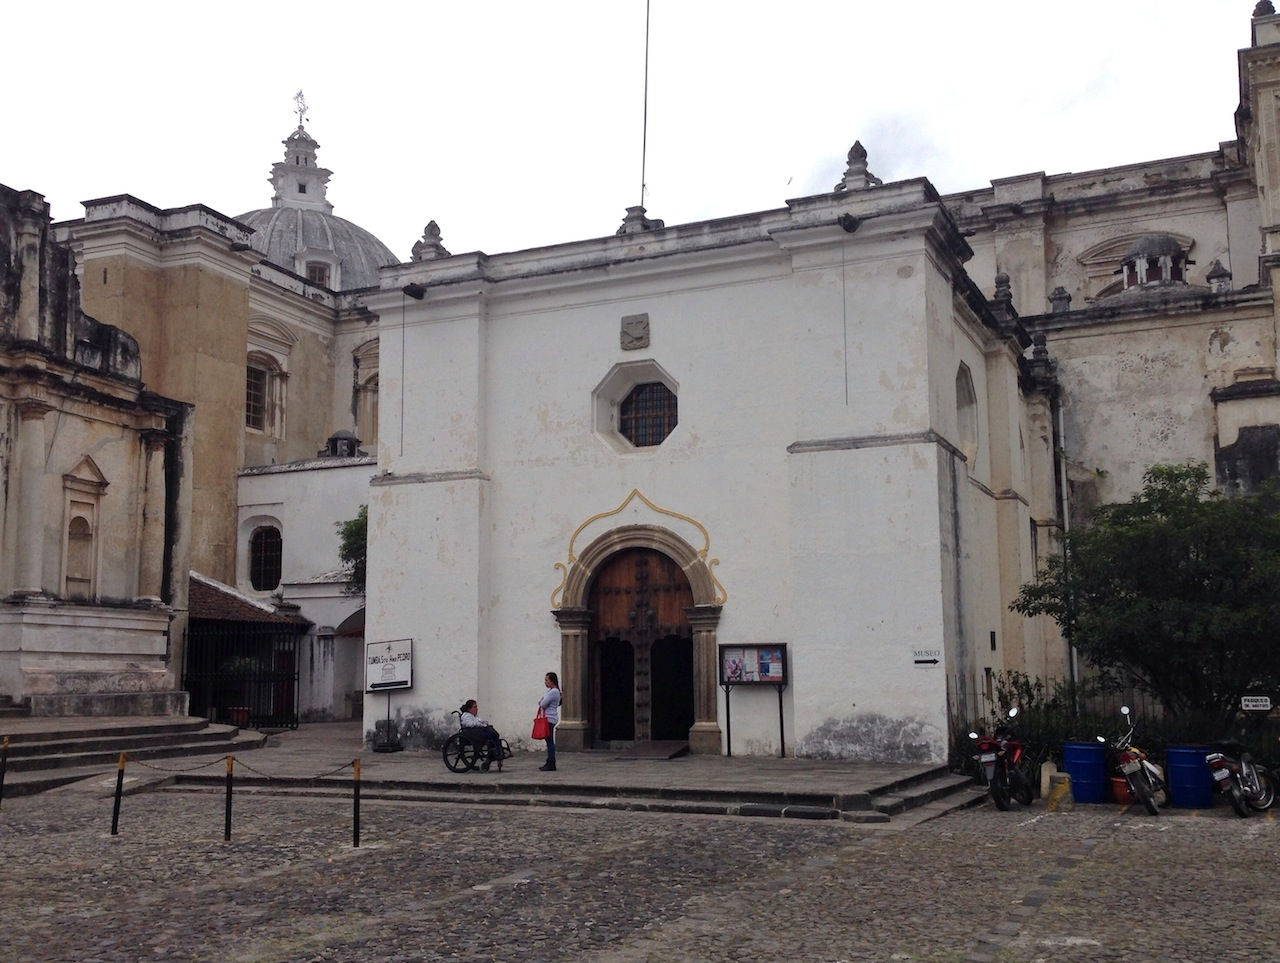 The Catedral de San Francisco in Antigua, Guatemala, is the city's oldest church. (Image by the author for Hyperallergic)